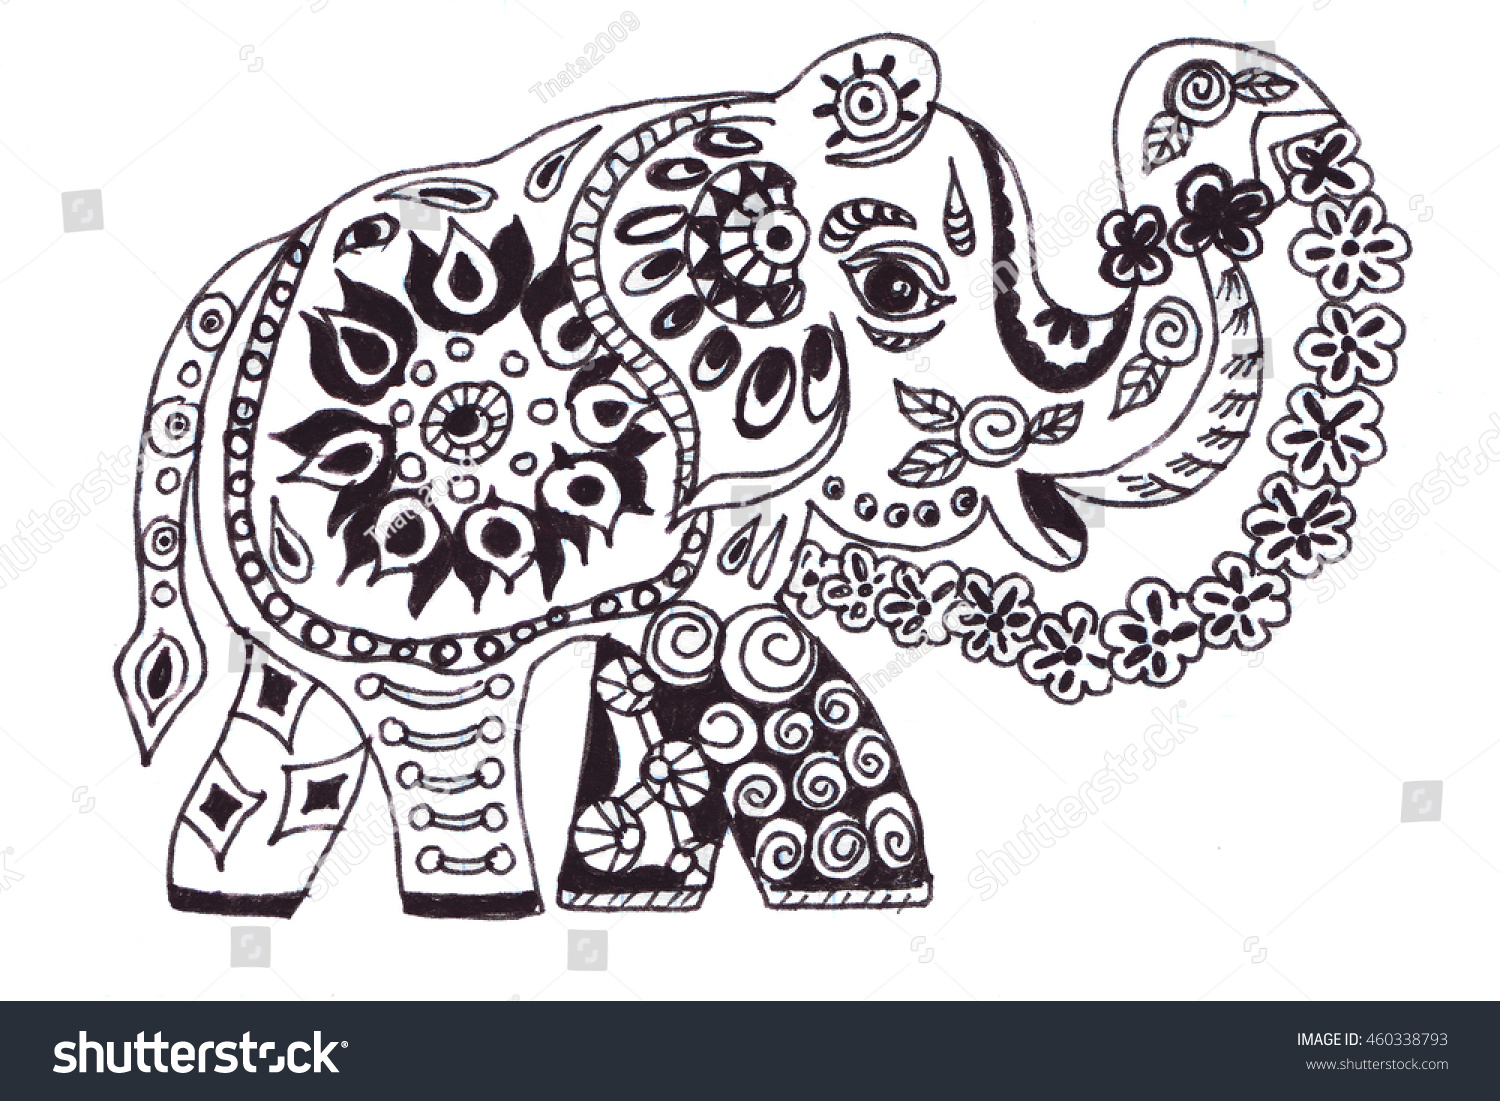 Illustration Drawn By Hand Outline Elephant Filled With And Floral Designs